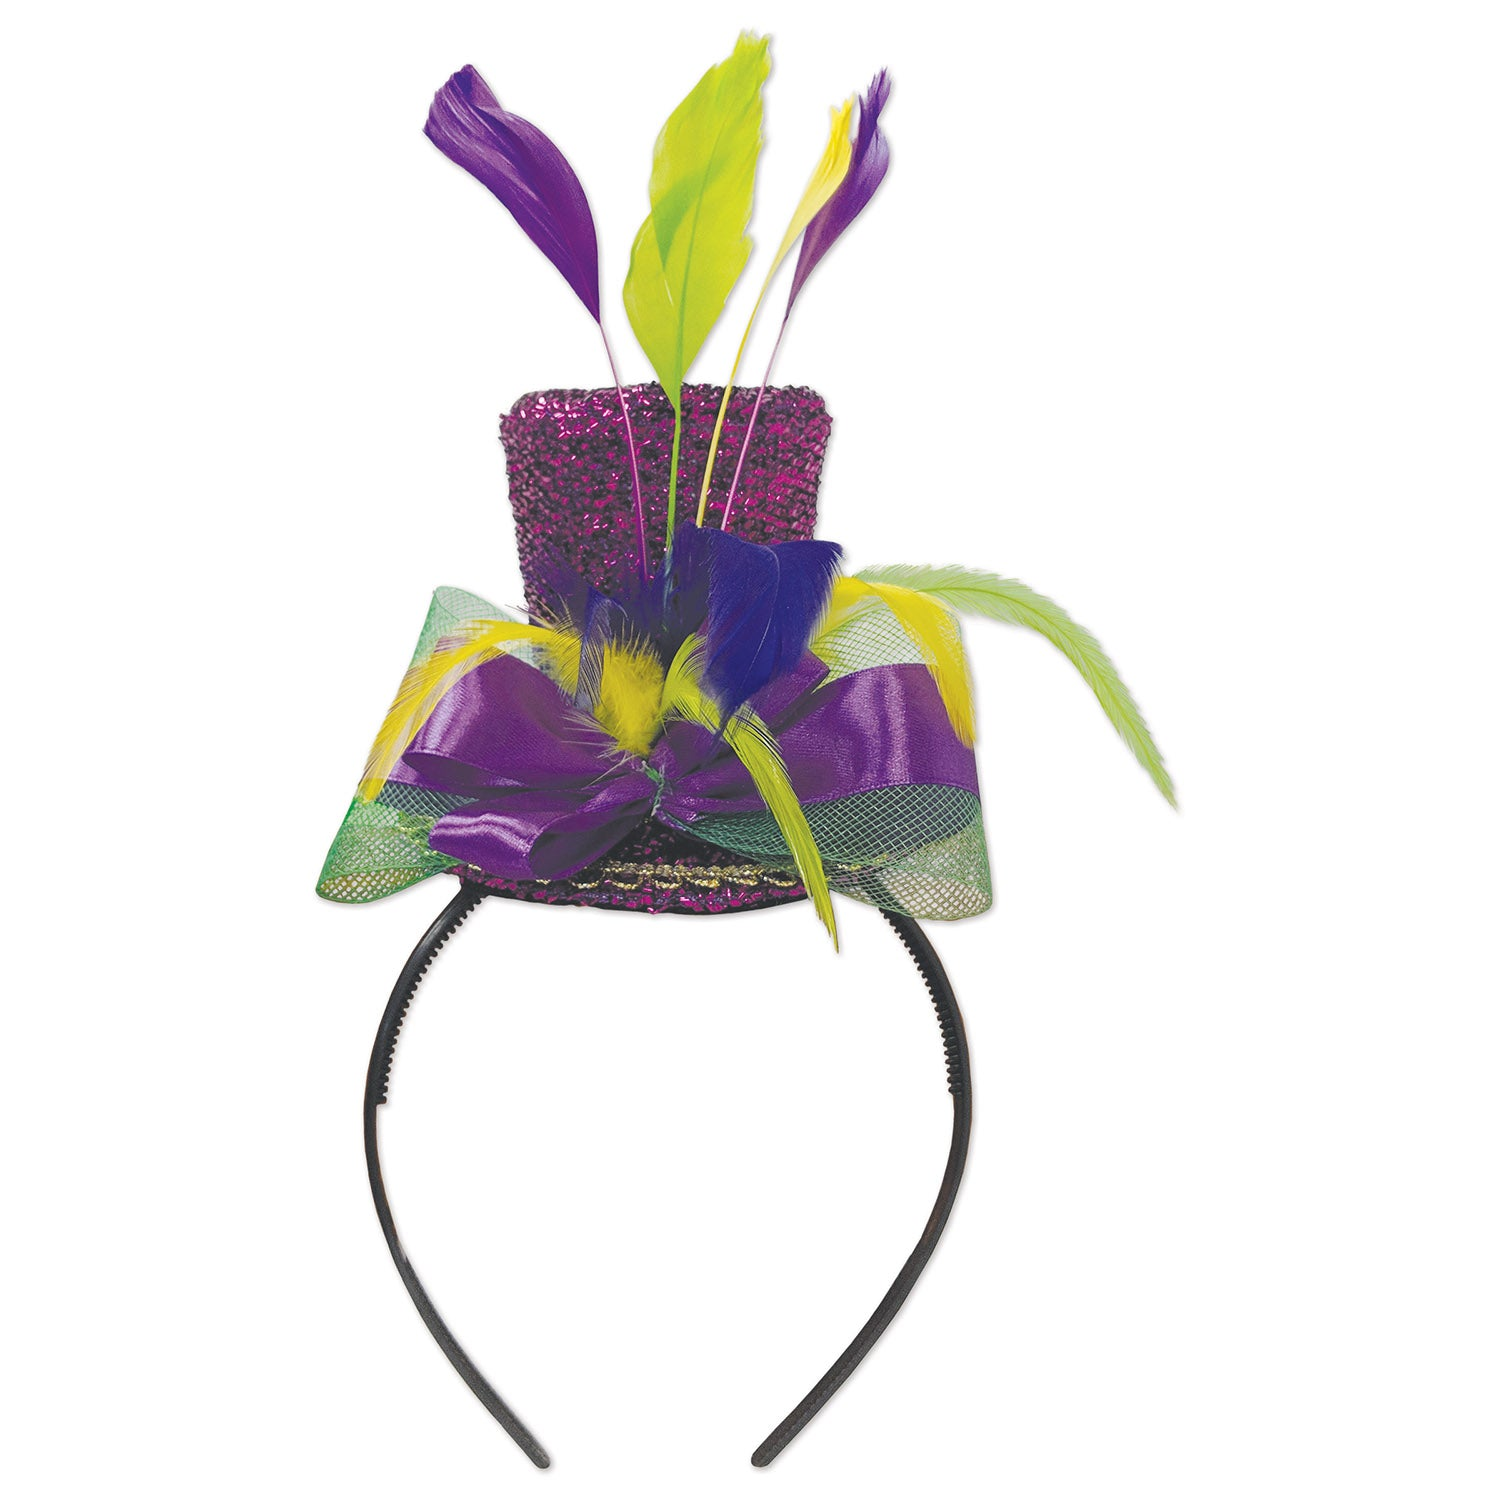 Mardi GrasTop Hat Headband by Beistle - Mardi Gras Theme Decorations